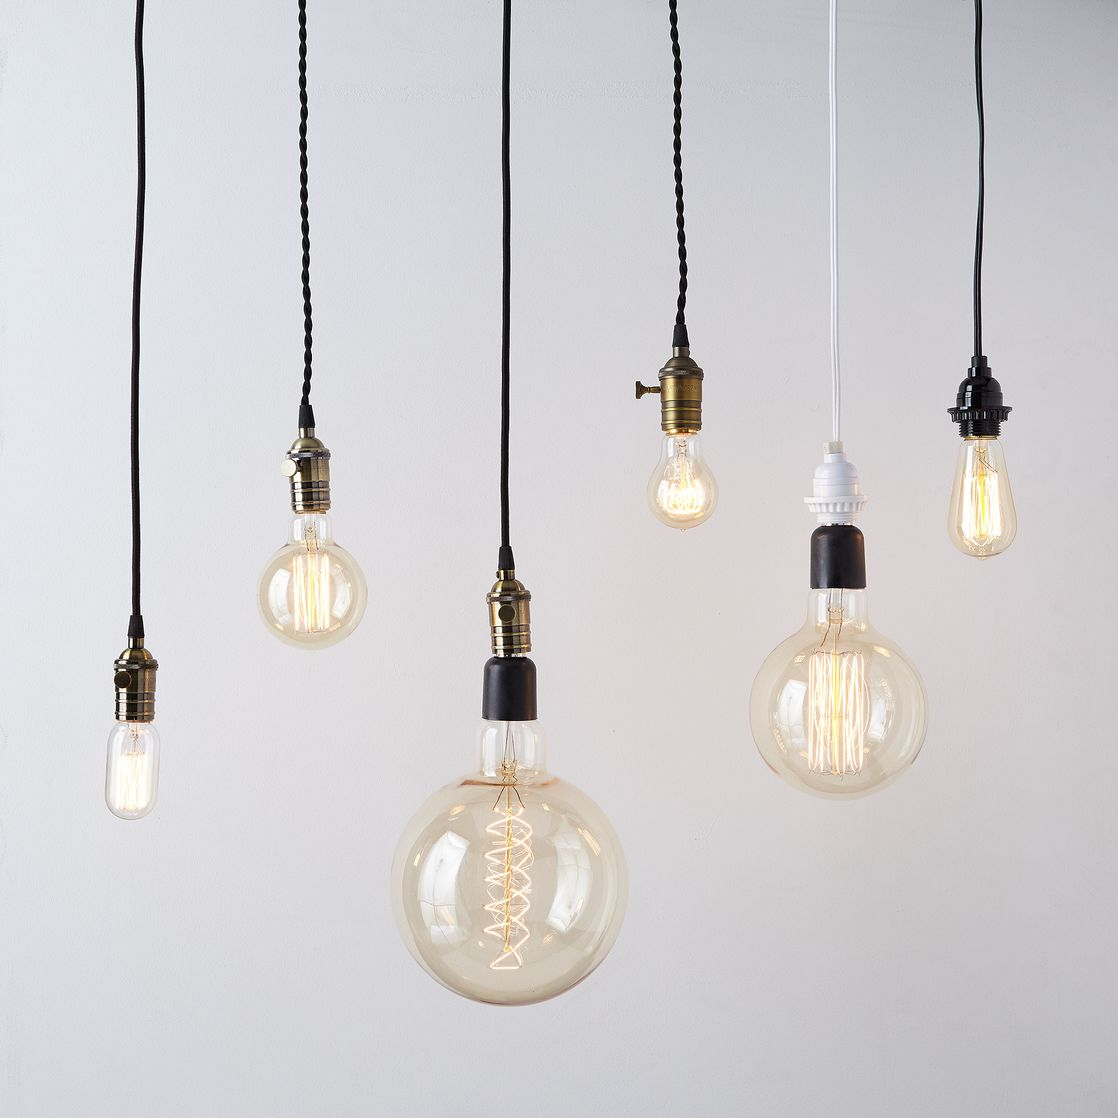 ebbf4dda 9958 4c41 8df1 8565bb95322e  2016 0517 string light decorative pendant lighting family silo rocky luten 036